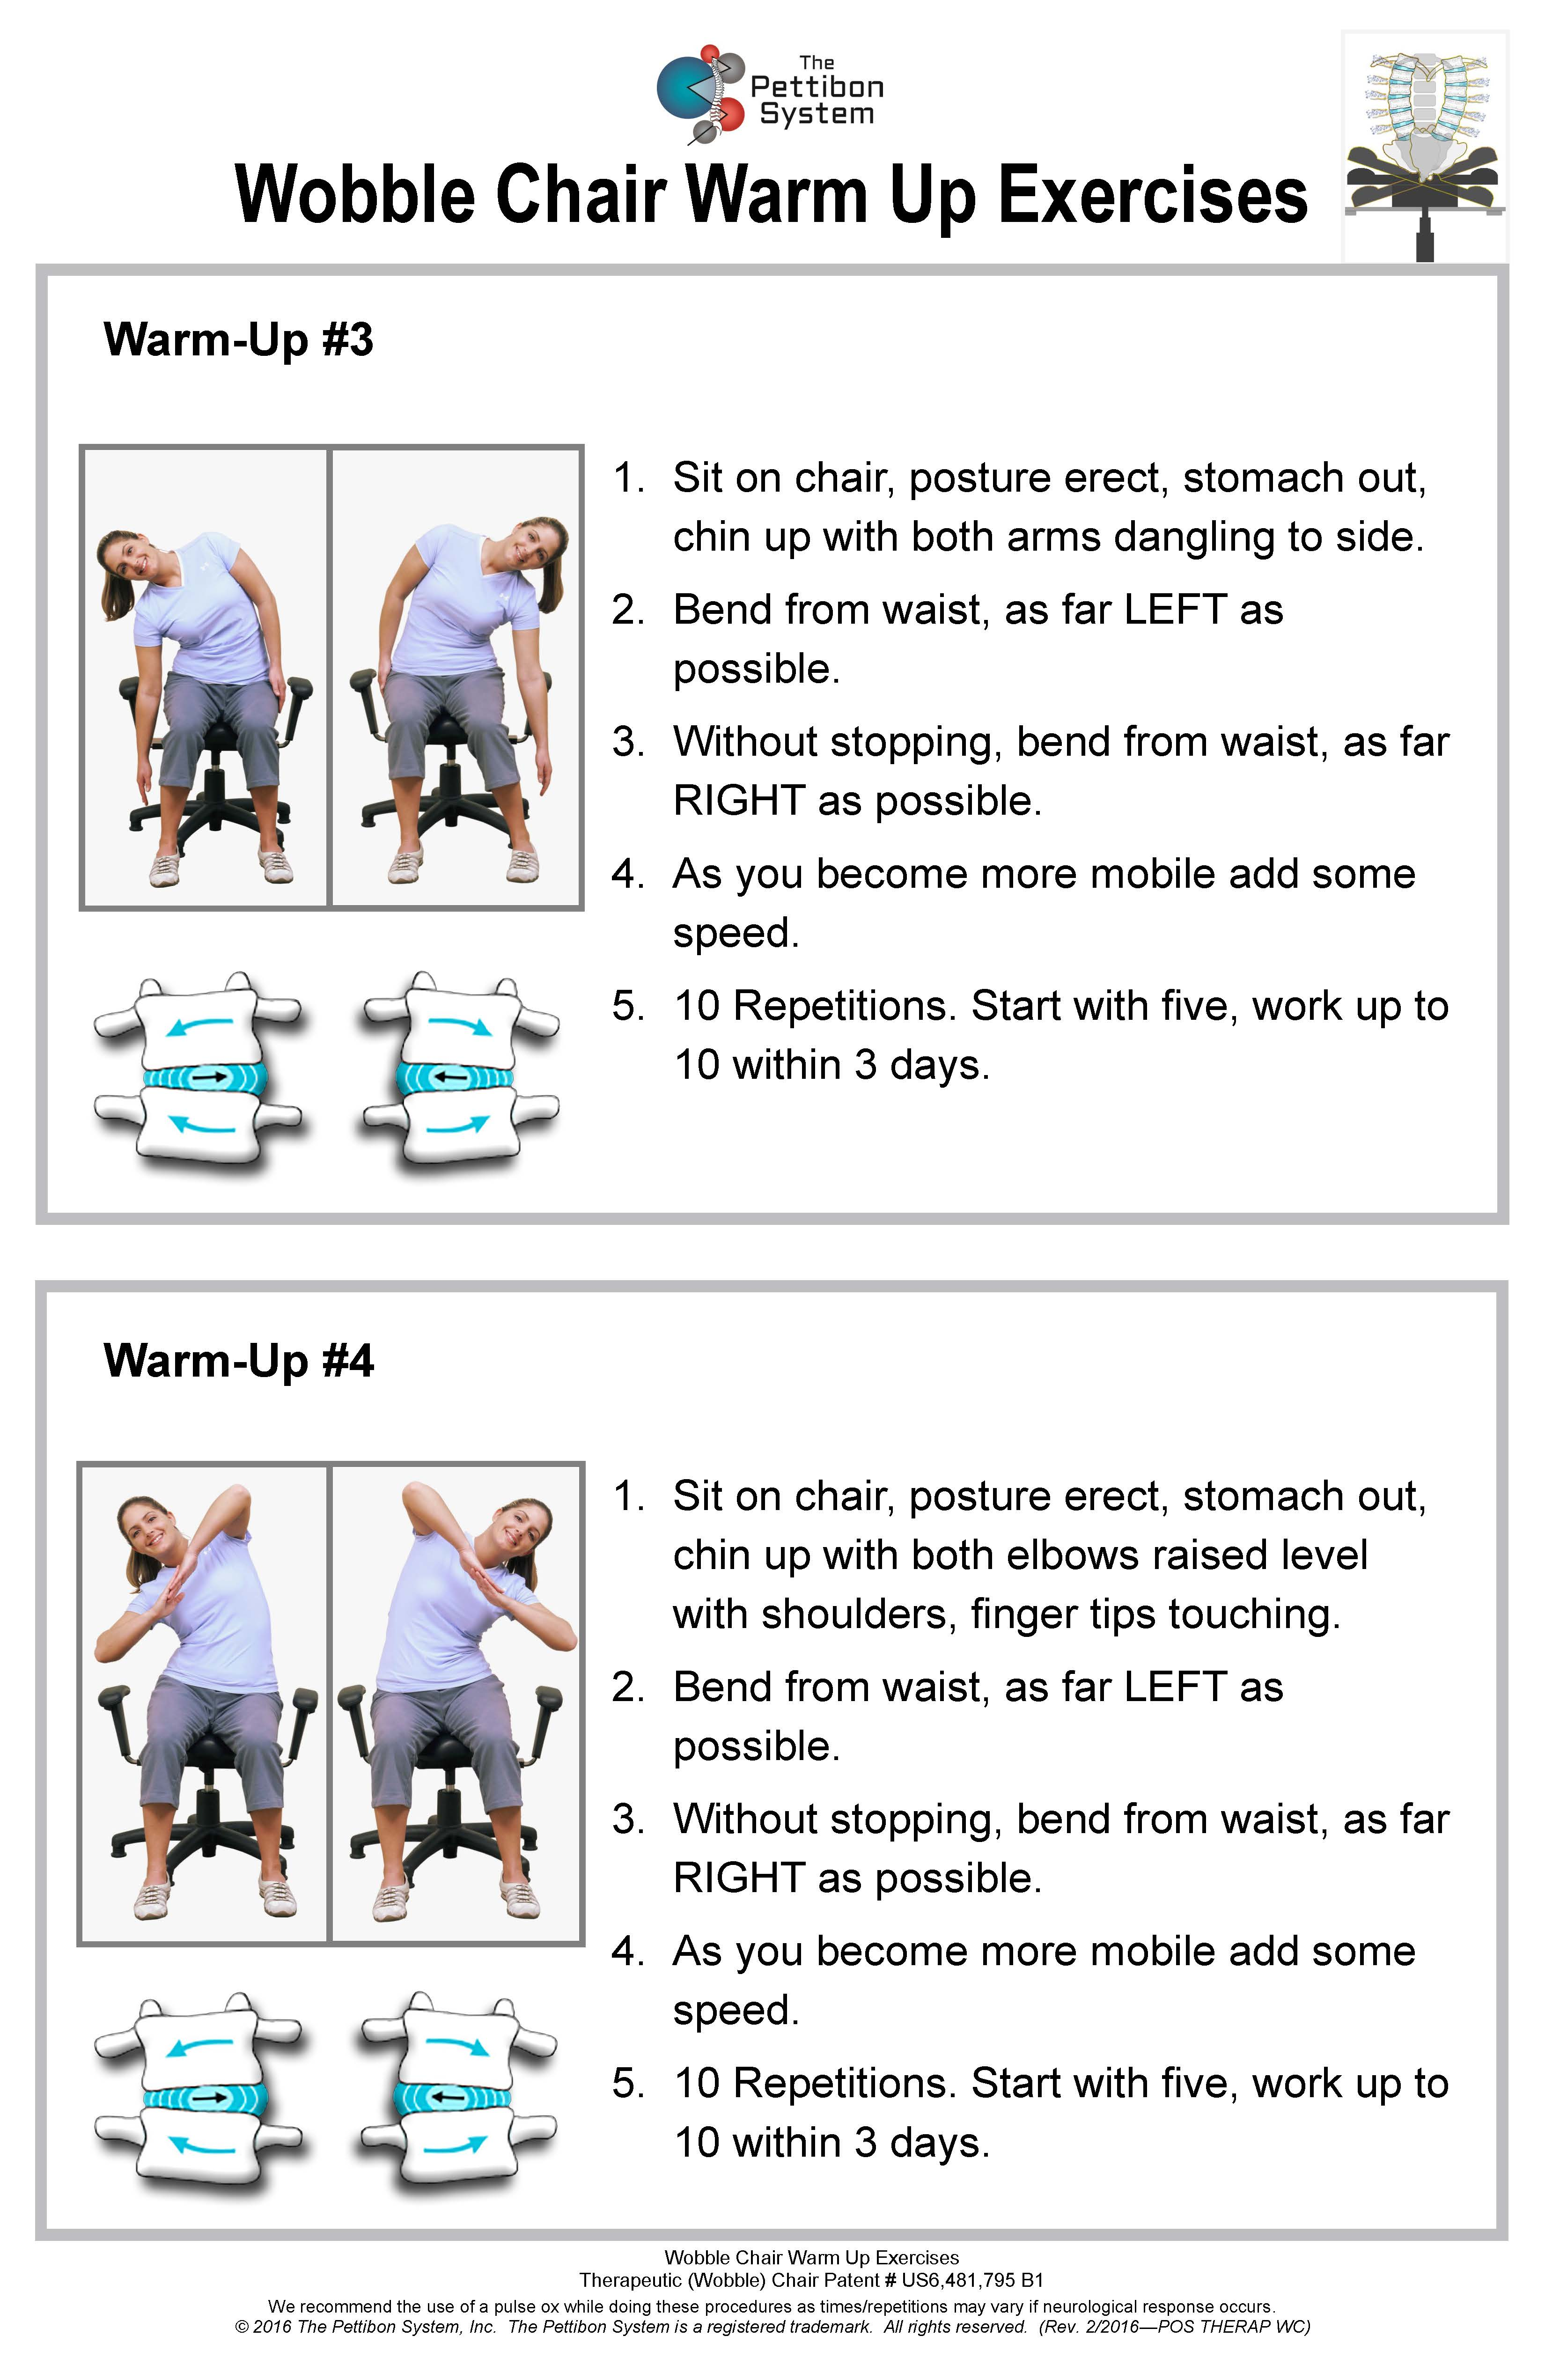 Wobble Chair Therapeutic The Pettibon System